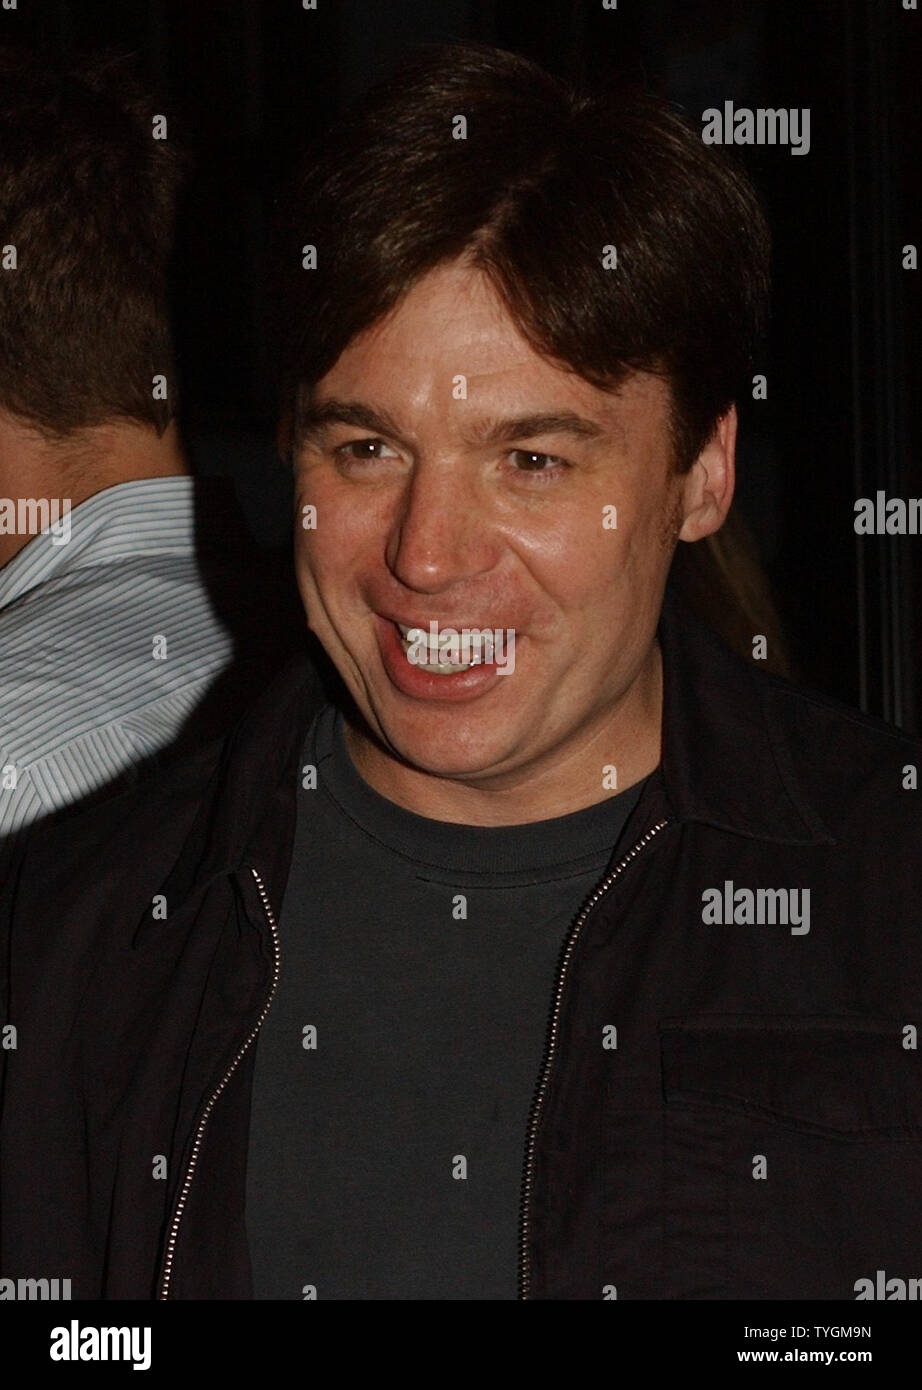 "Actor Mike Meyers poses on June 14, 2004 at the premiere of Michael Moore new controversal film on President Bush entitled "" Fahrenheit 9/11"" (UPI Photo/Ezio Petersen) Stock Photo"